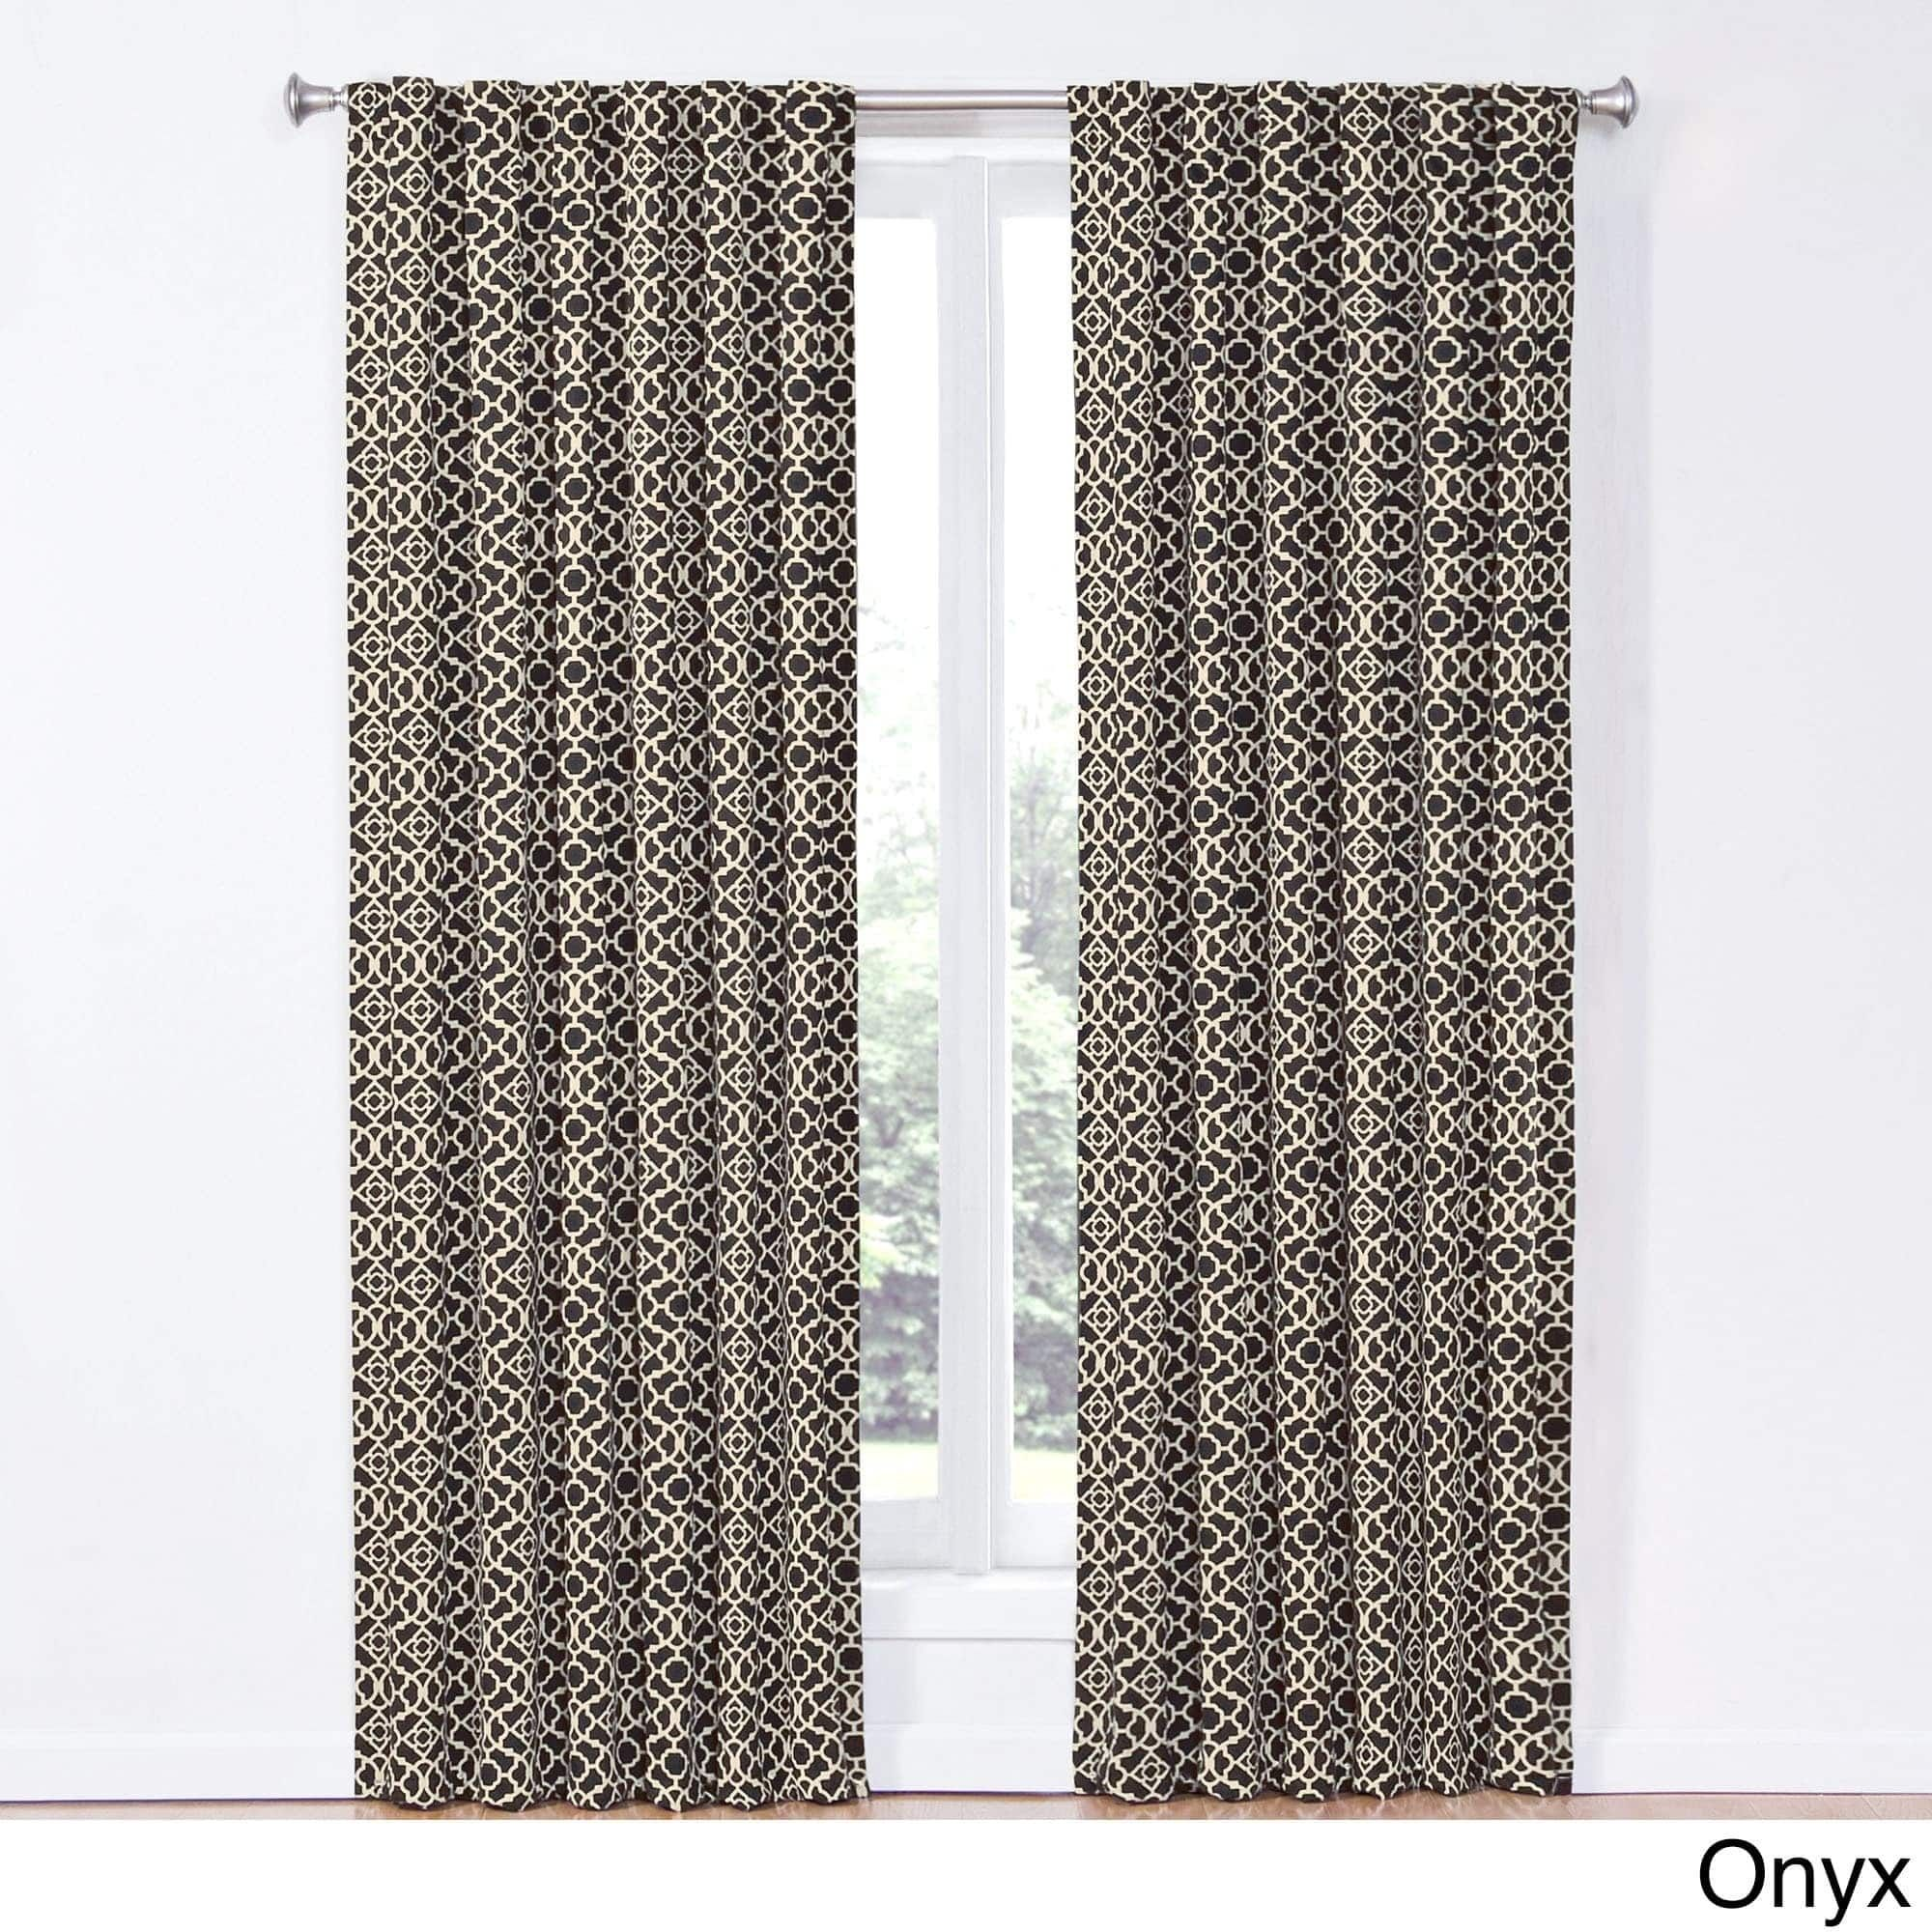 shopping get deals sheer by cheap panel curtain line on guides find at curtains piece grommet quotations linen source inch